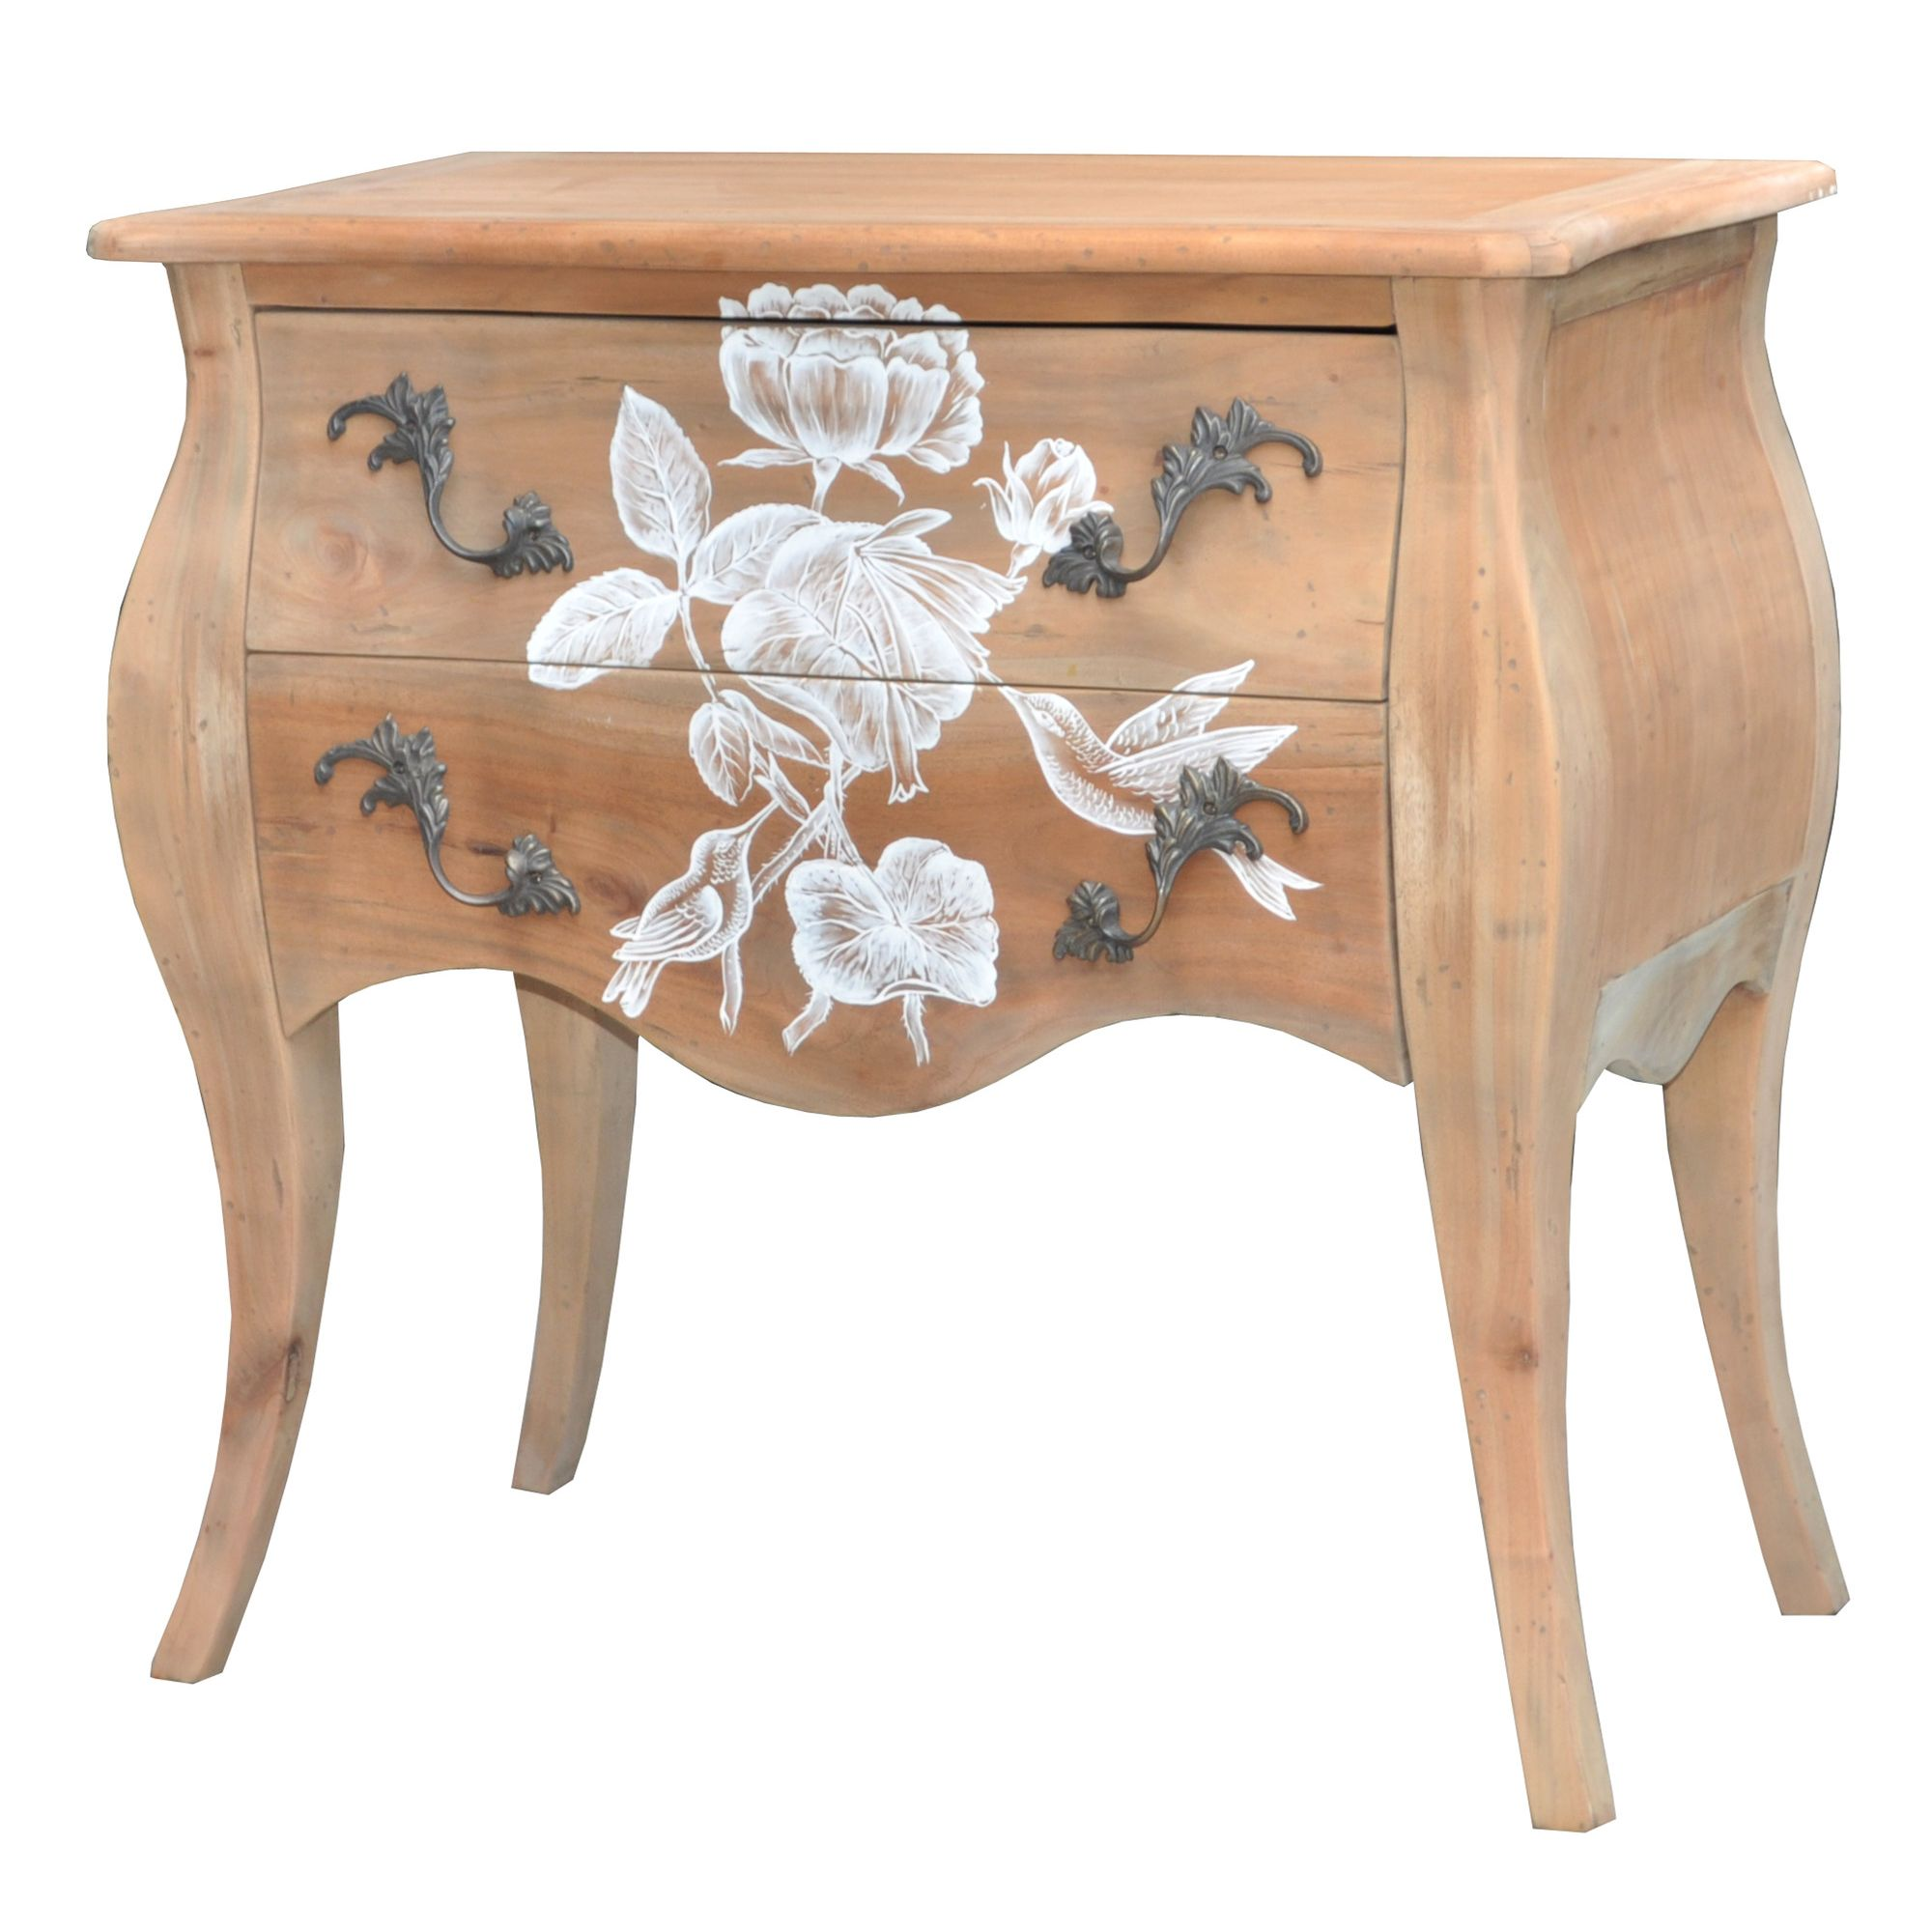 Lock stock and barrel Shell Valbonne Bedside Cabinet at Tesco Direct